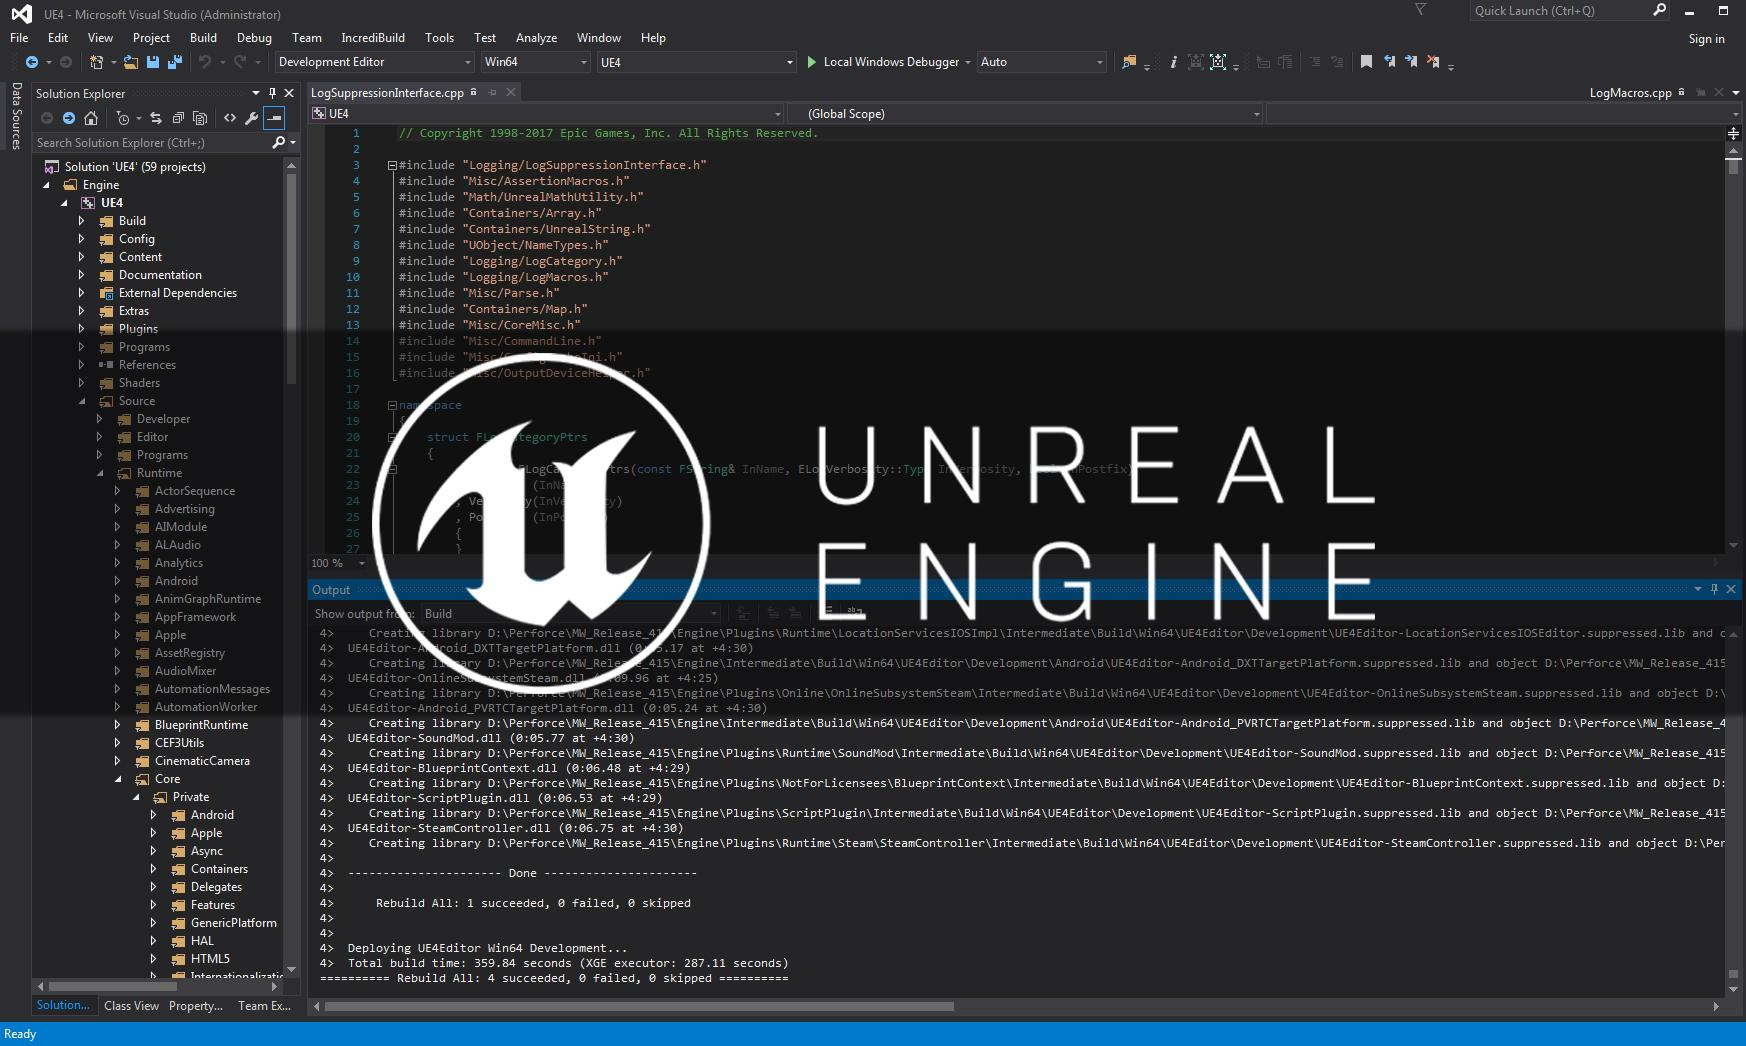 unreal engine 4 linux vs windows